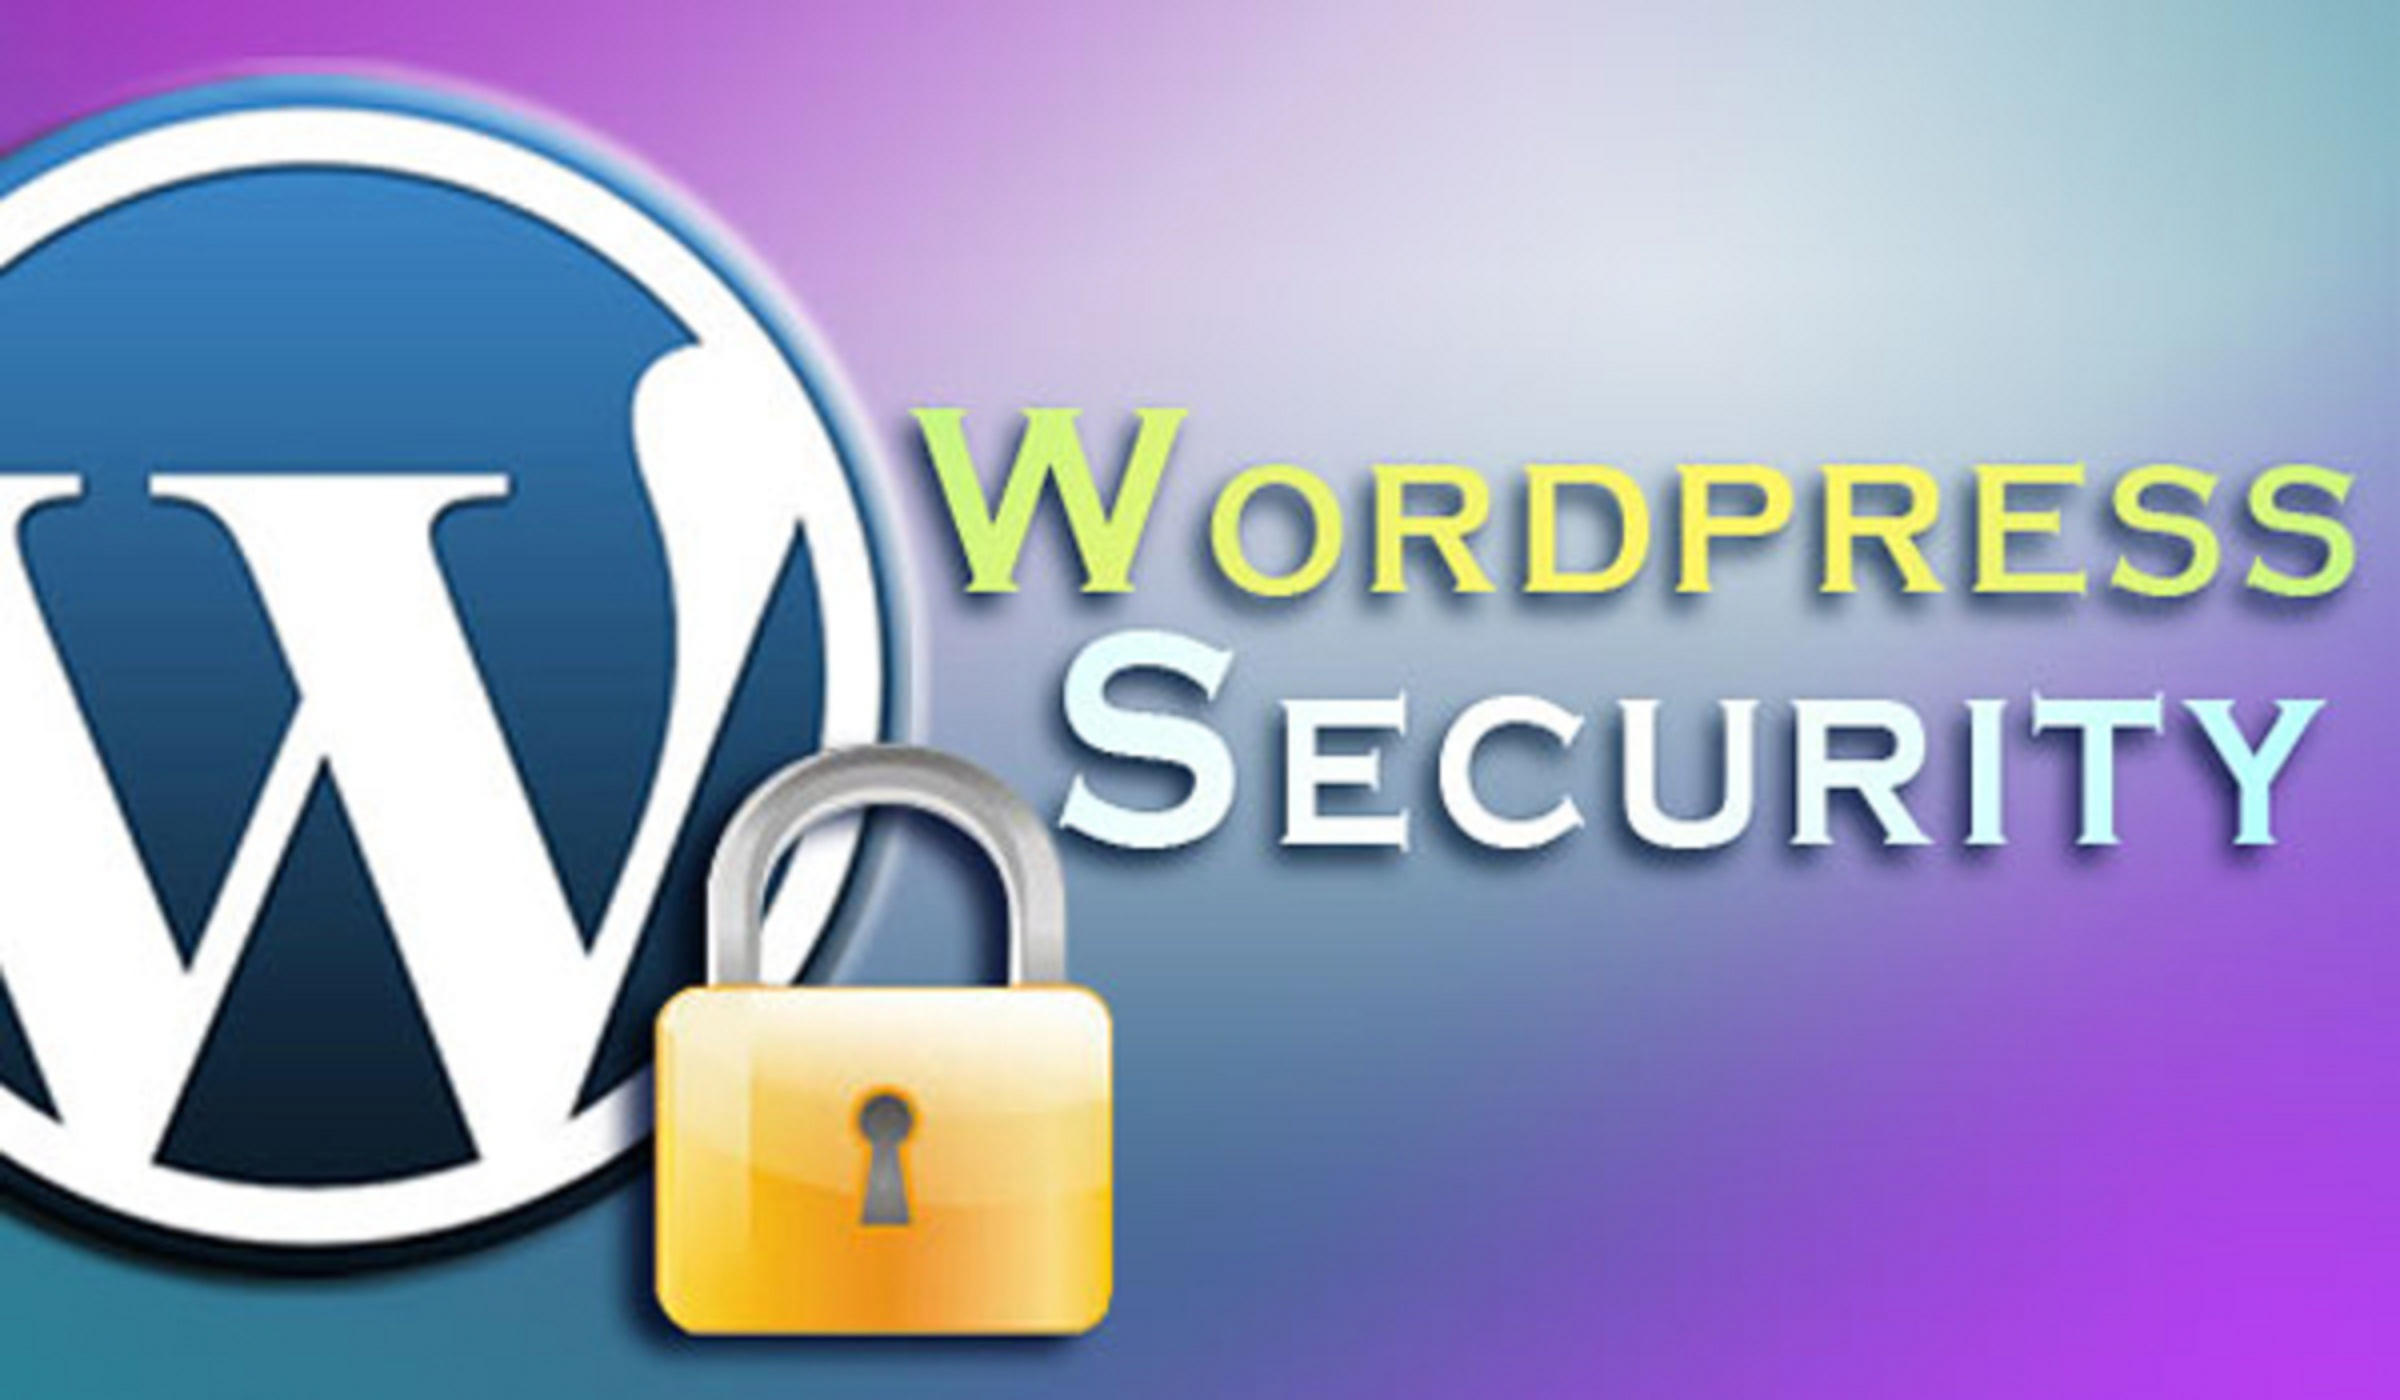 6 Best WordPress Security Plugins 2017